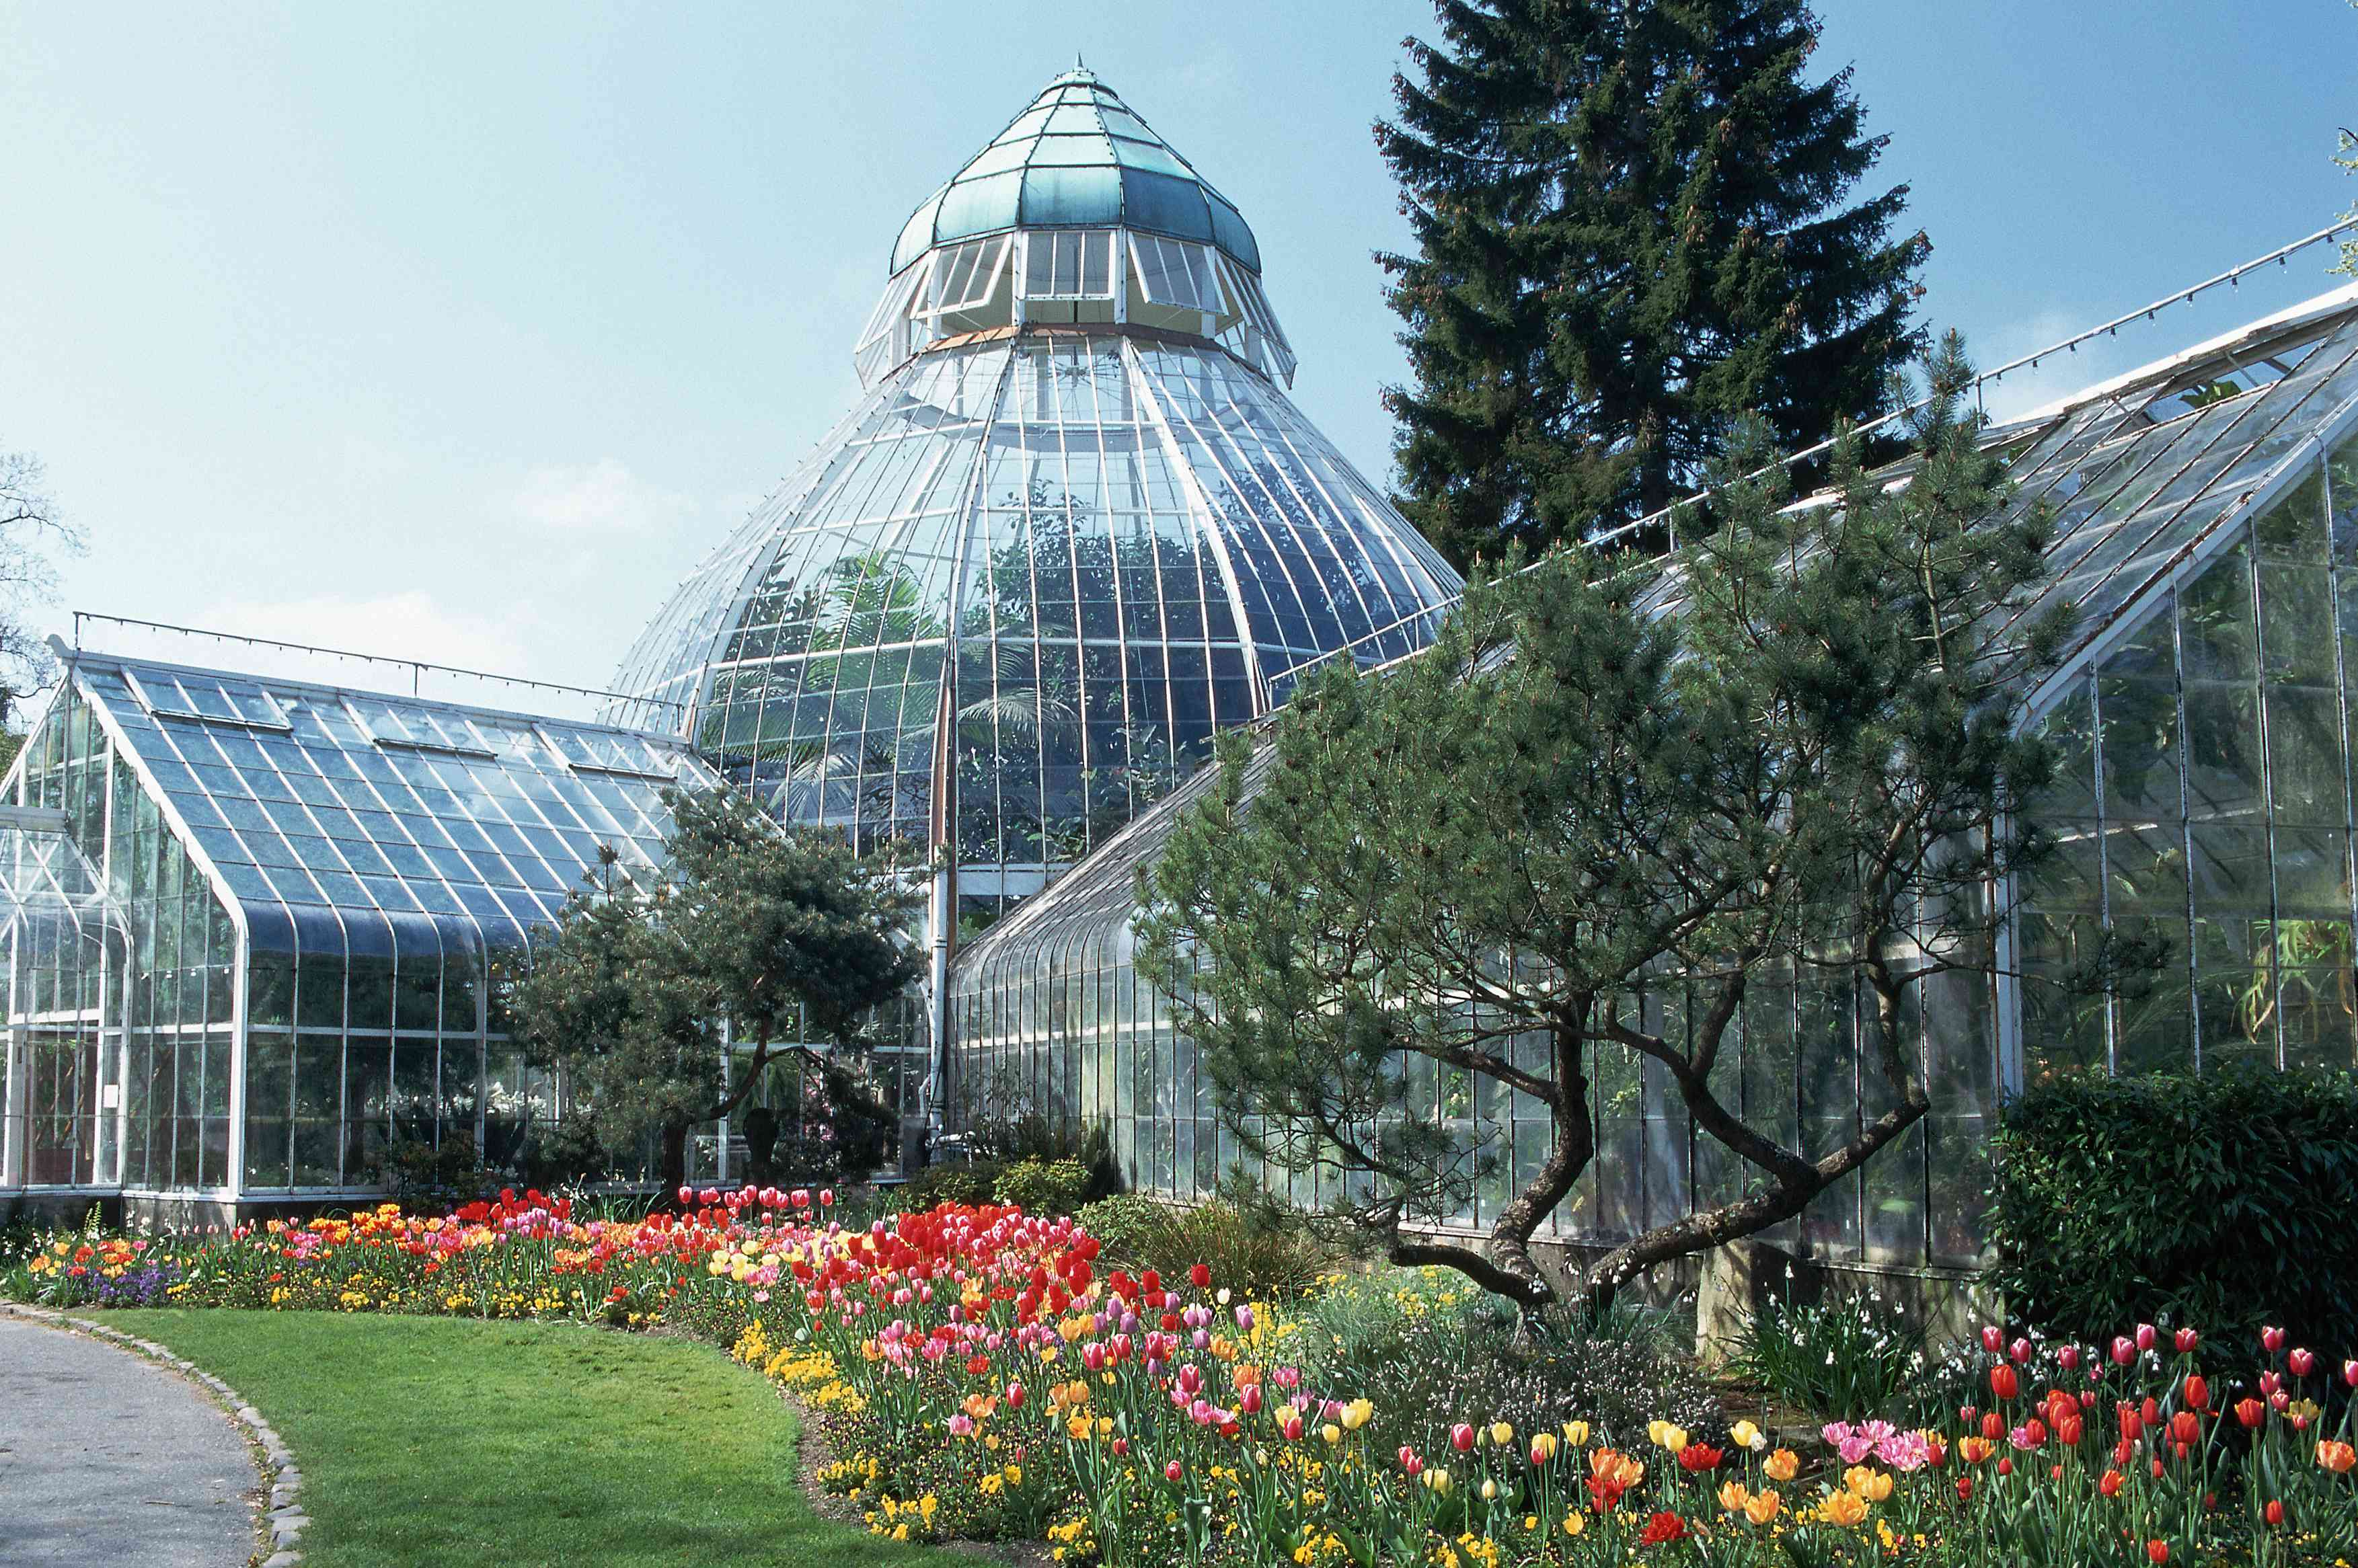 Carefully landscaped tulip bed surround the greenhouse of the Wright Park Conservatory in Tacoma, Washington